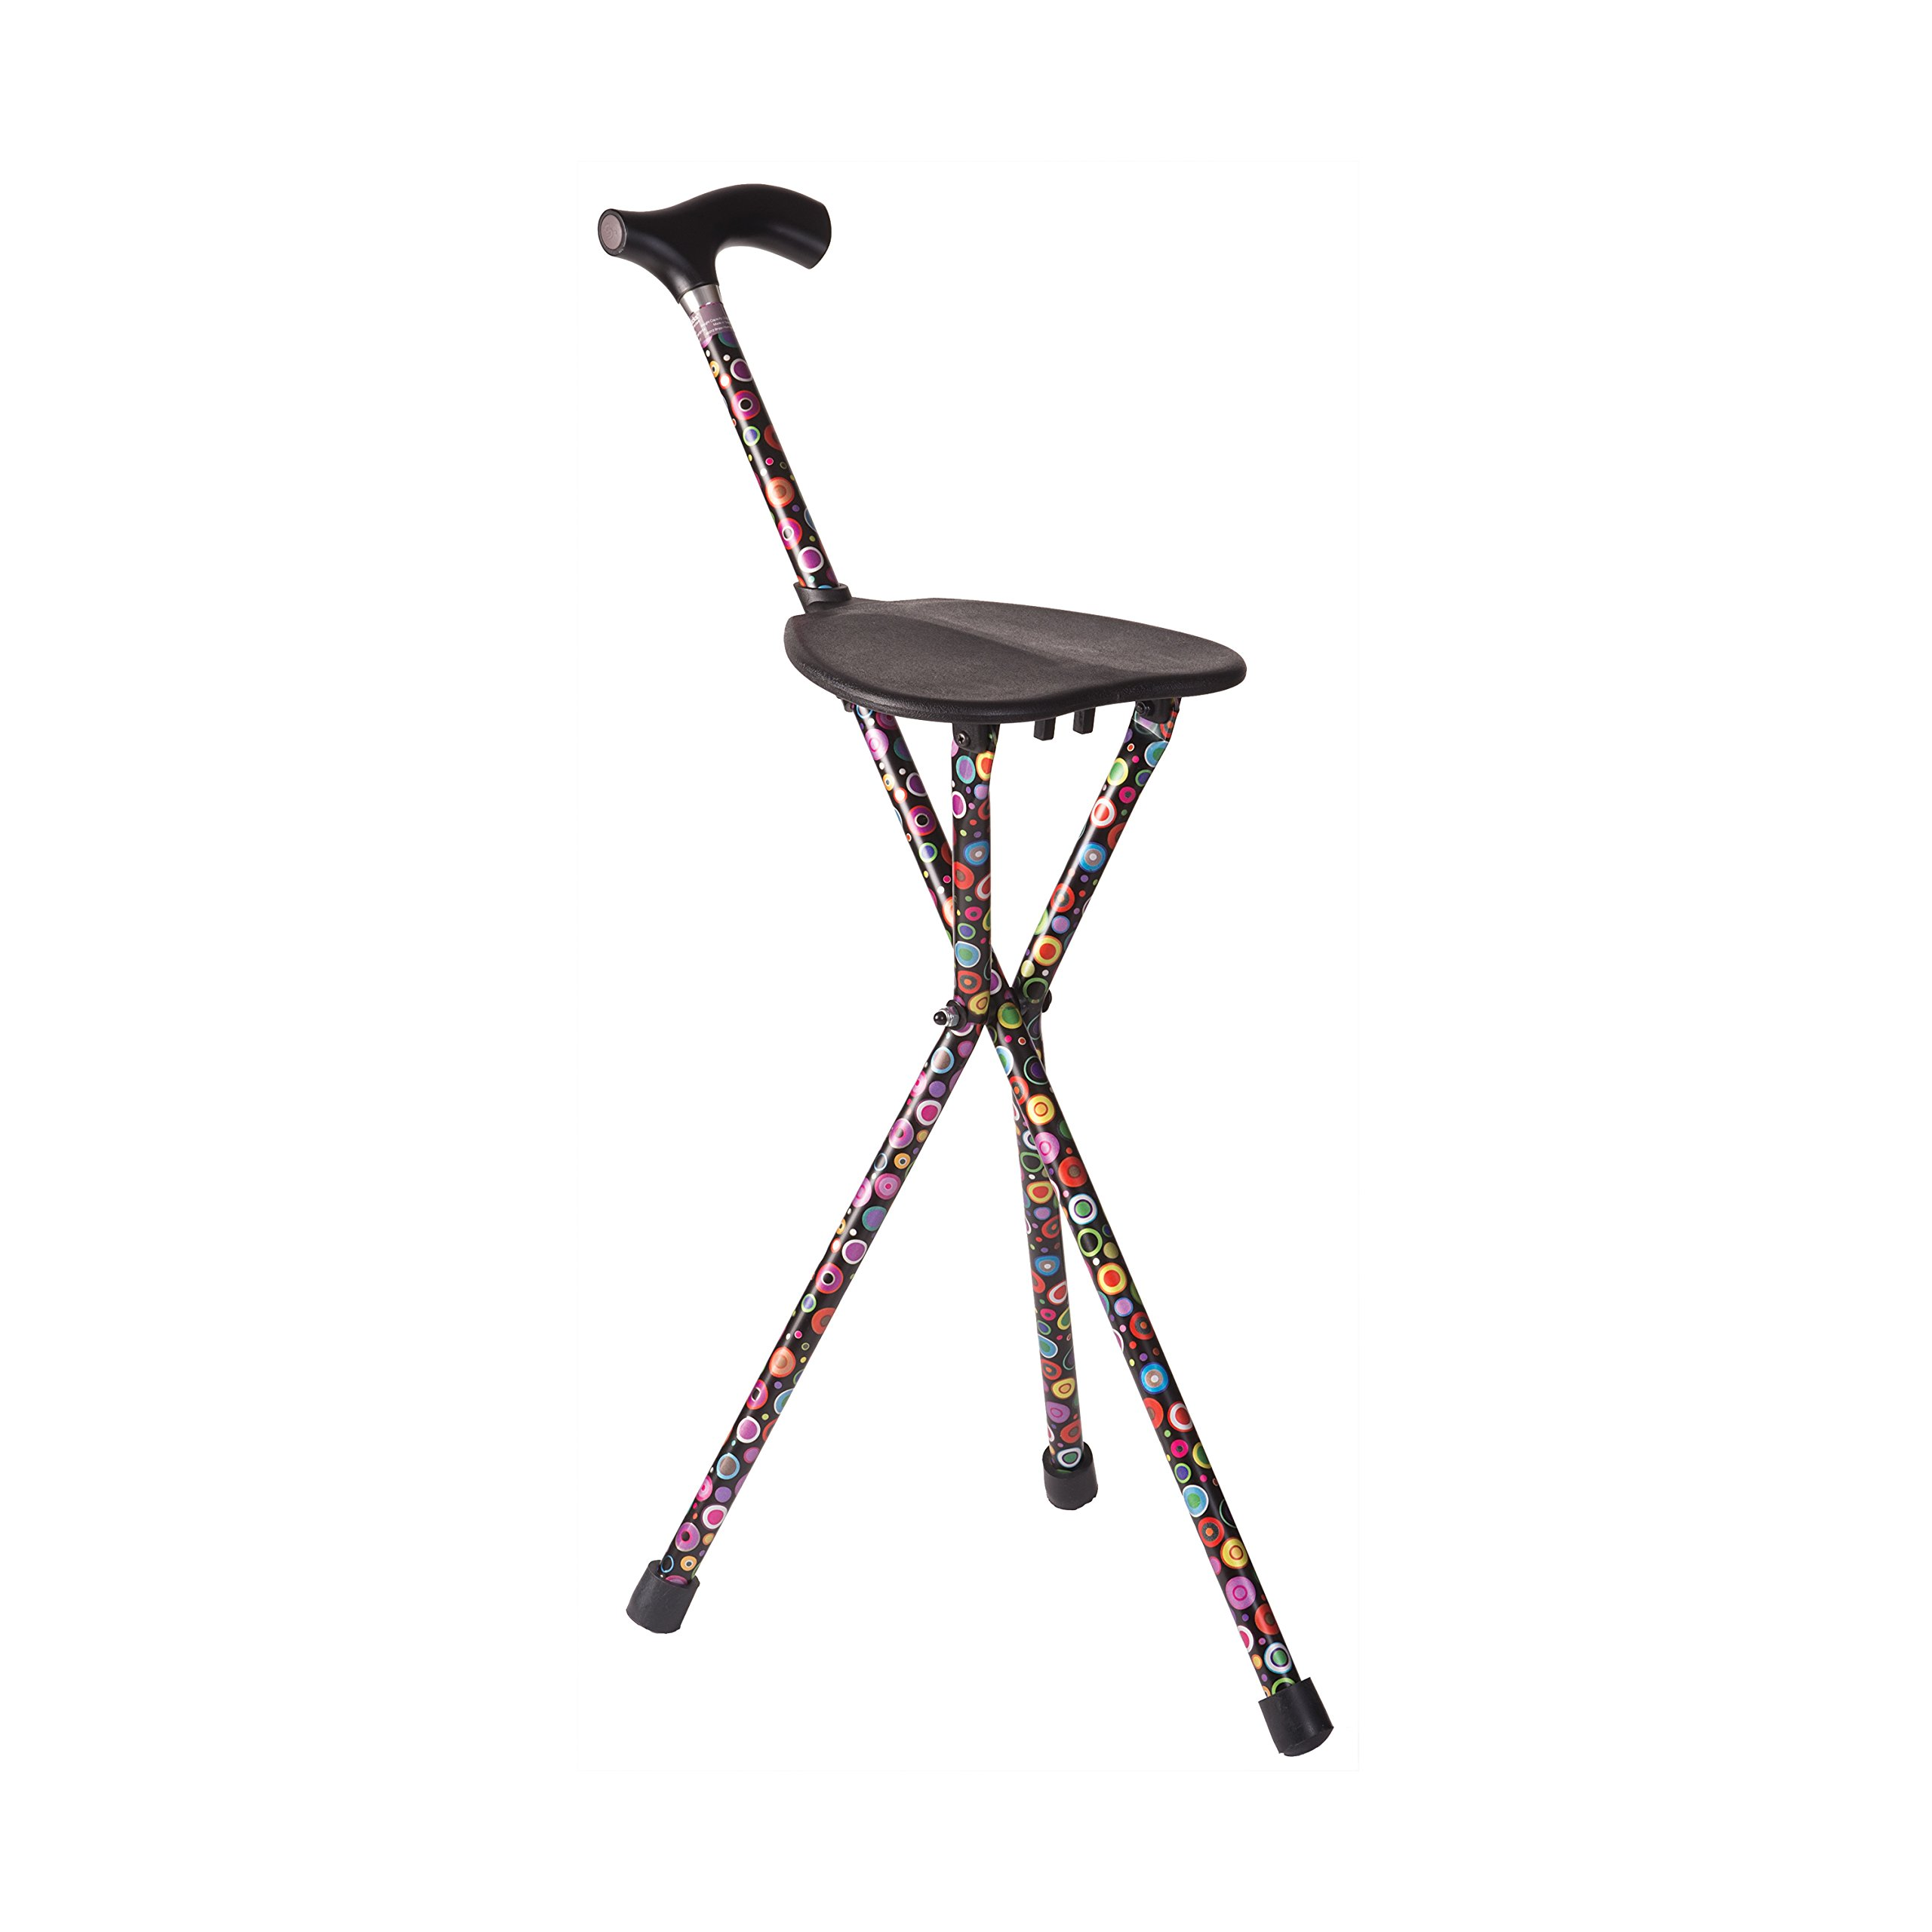 Switch Sticks Walking Stick With Seat, 2-in-1 Folding Walking Stick Seat, Bubbles